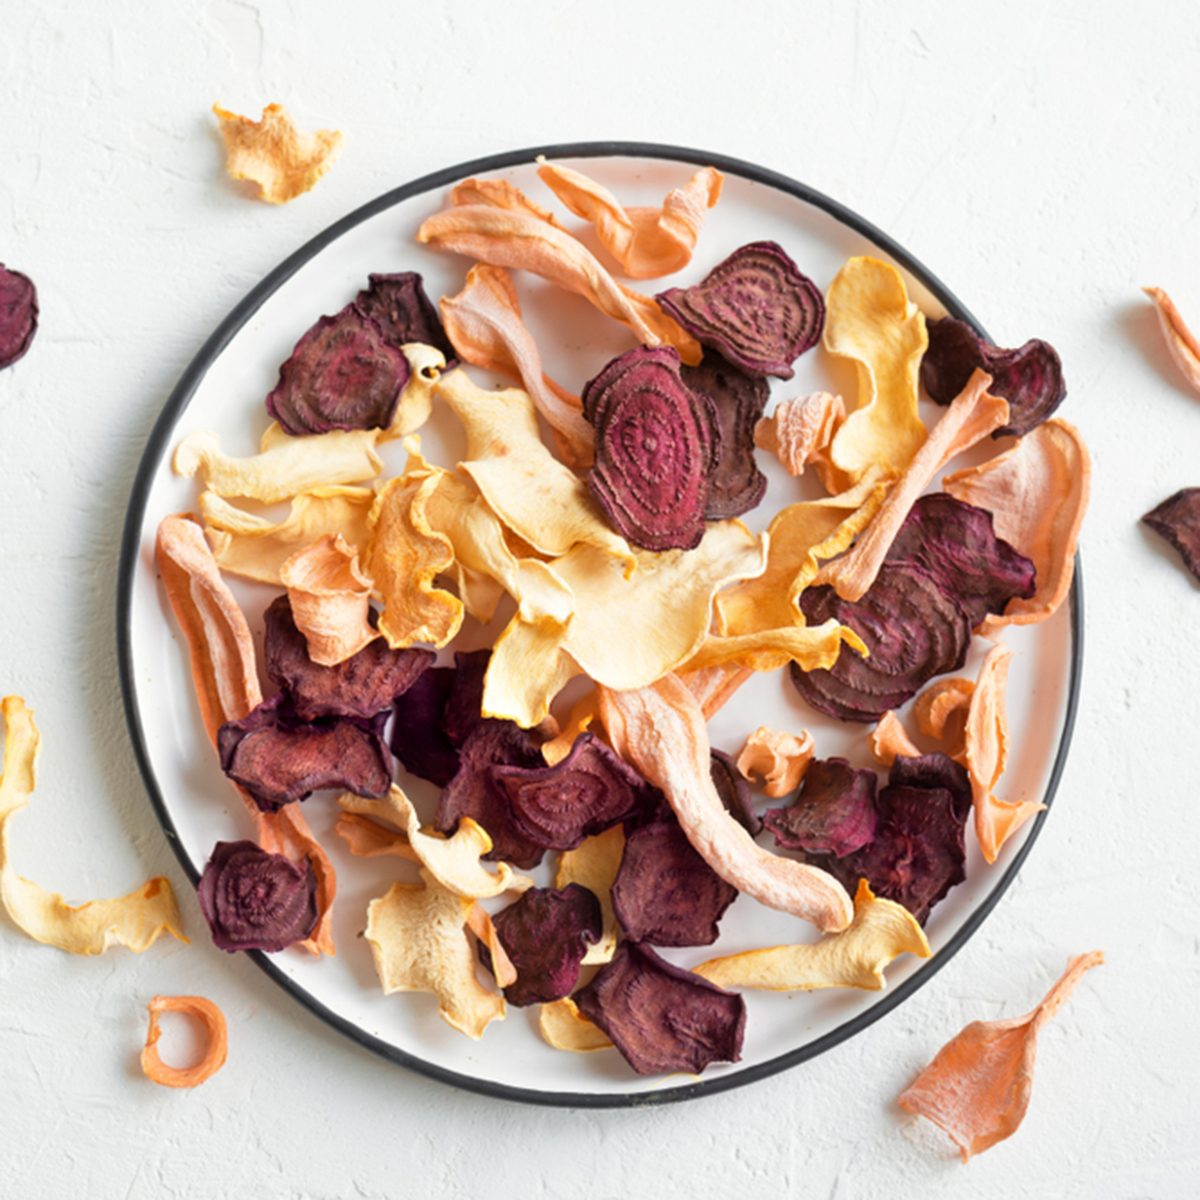 Various vegetable chips on white background, copy space. Assorted dehydrated beetroot, carrot, pumpkin vegetable chips - healthy vegan snack.; Shutterstock ID 1155178324; Job (TFH, TOH, RD, BNB, CWM, CM): TOH